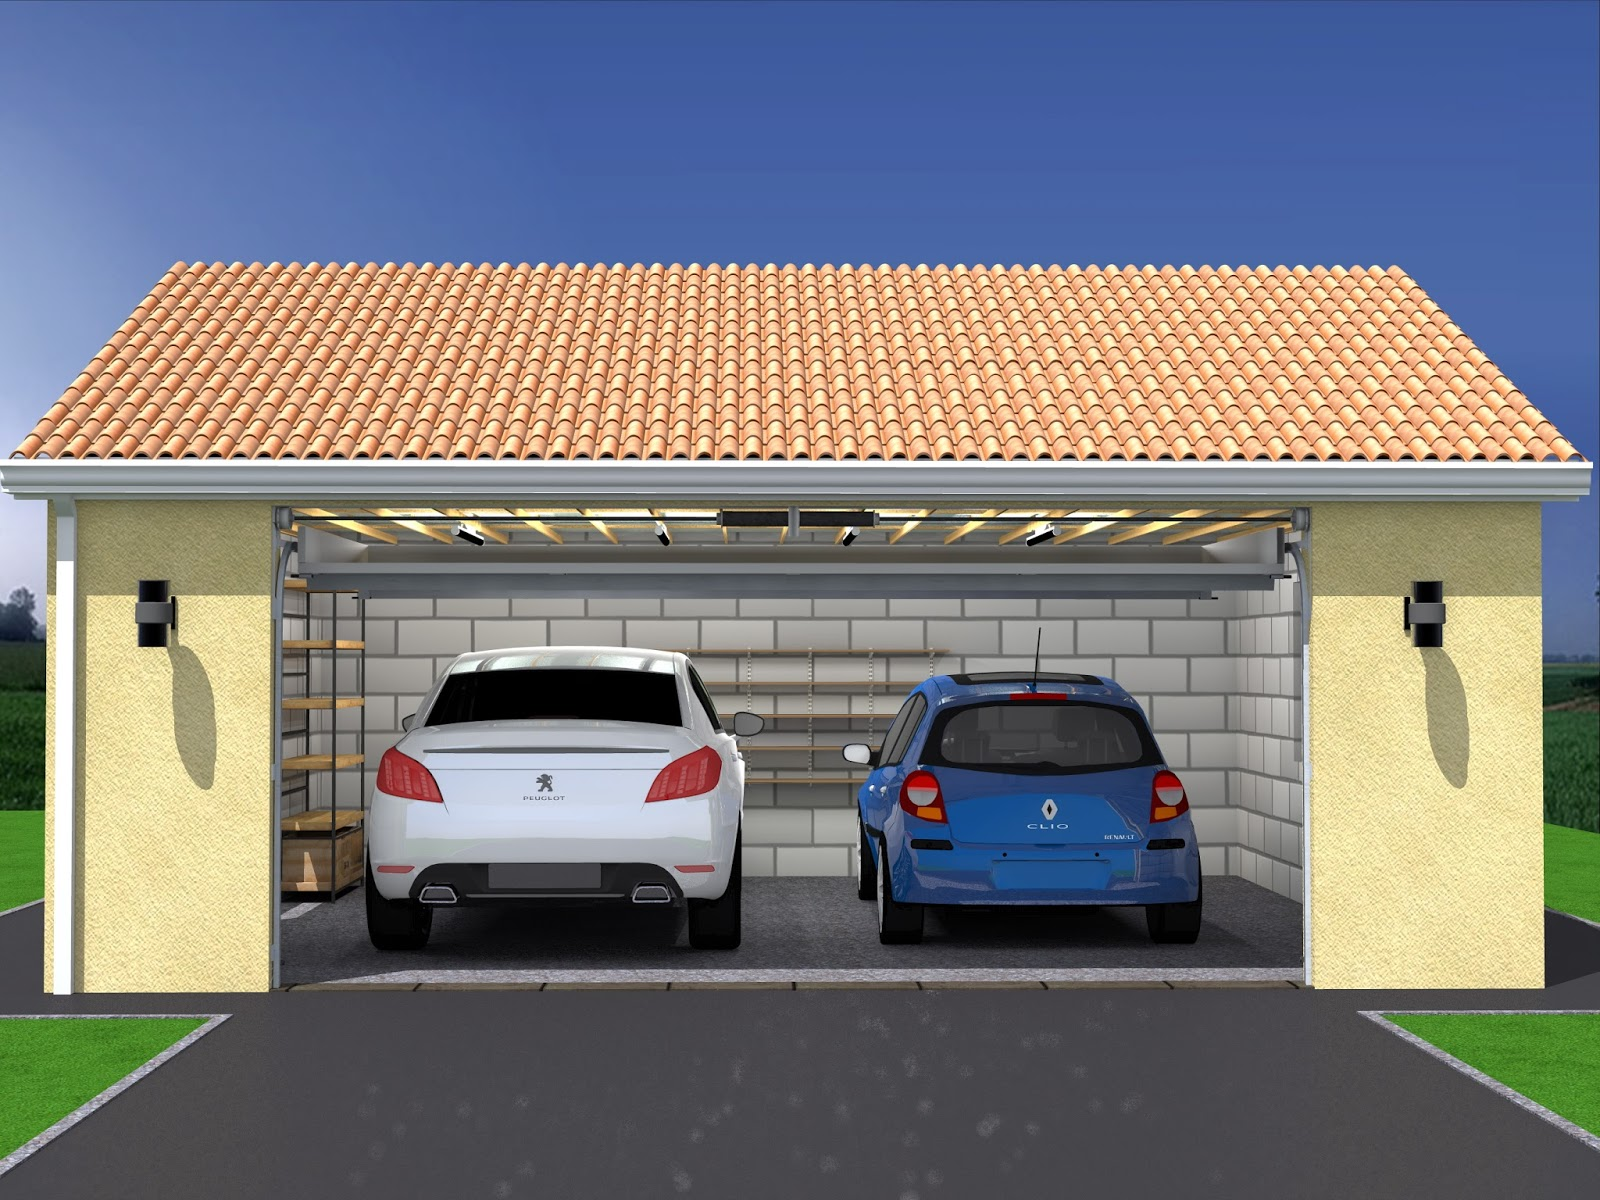 Projet de construction de garage double - Prix de construction d un garage au m2 ...